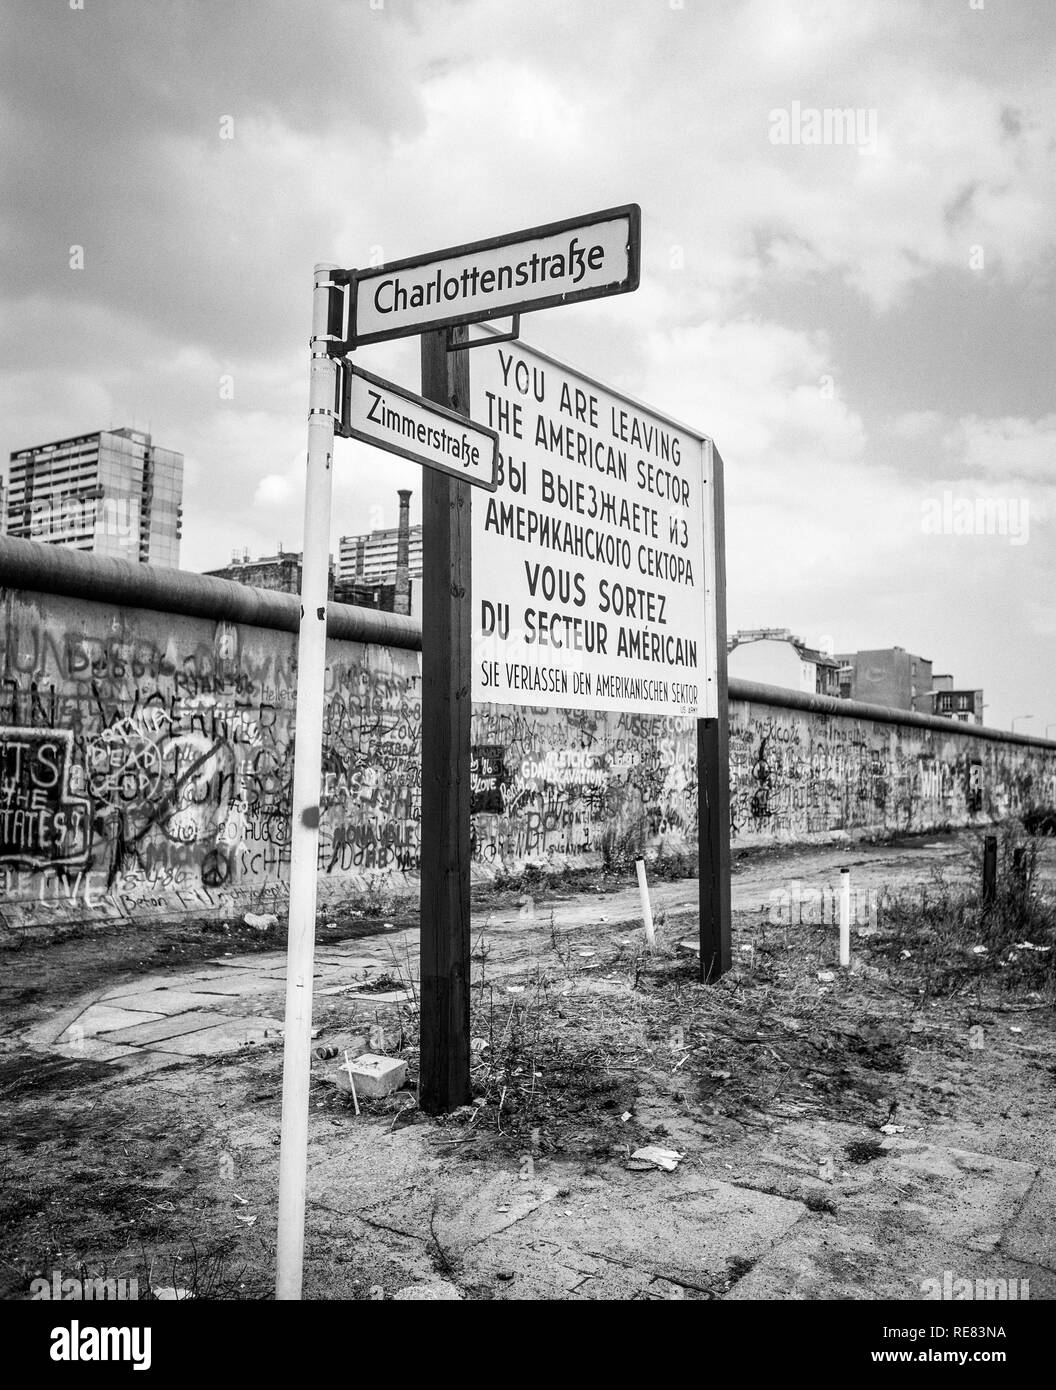 August 1986, leaving American sector warning sign, Zimmerstrasse street sign, Berlin Wall graffitis, Kreuzberg, West Berlin side, Germany, Europe, Stock Photo